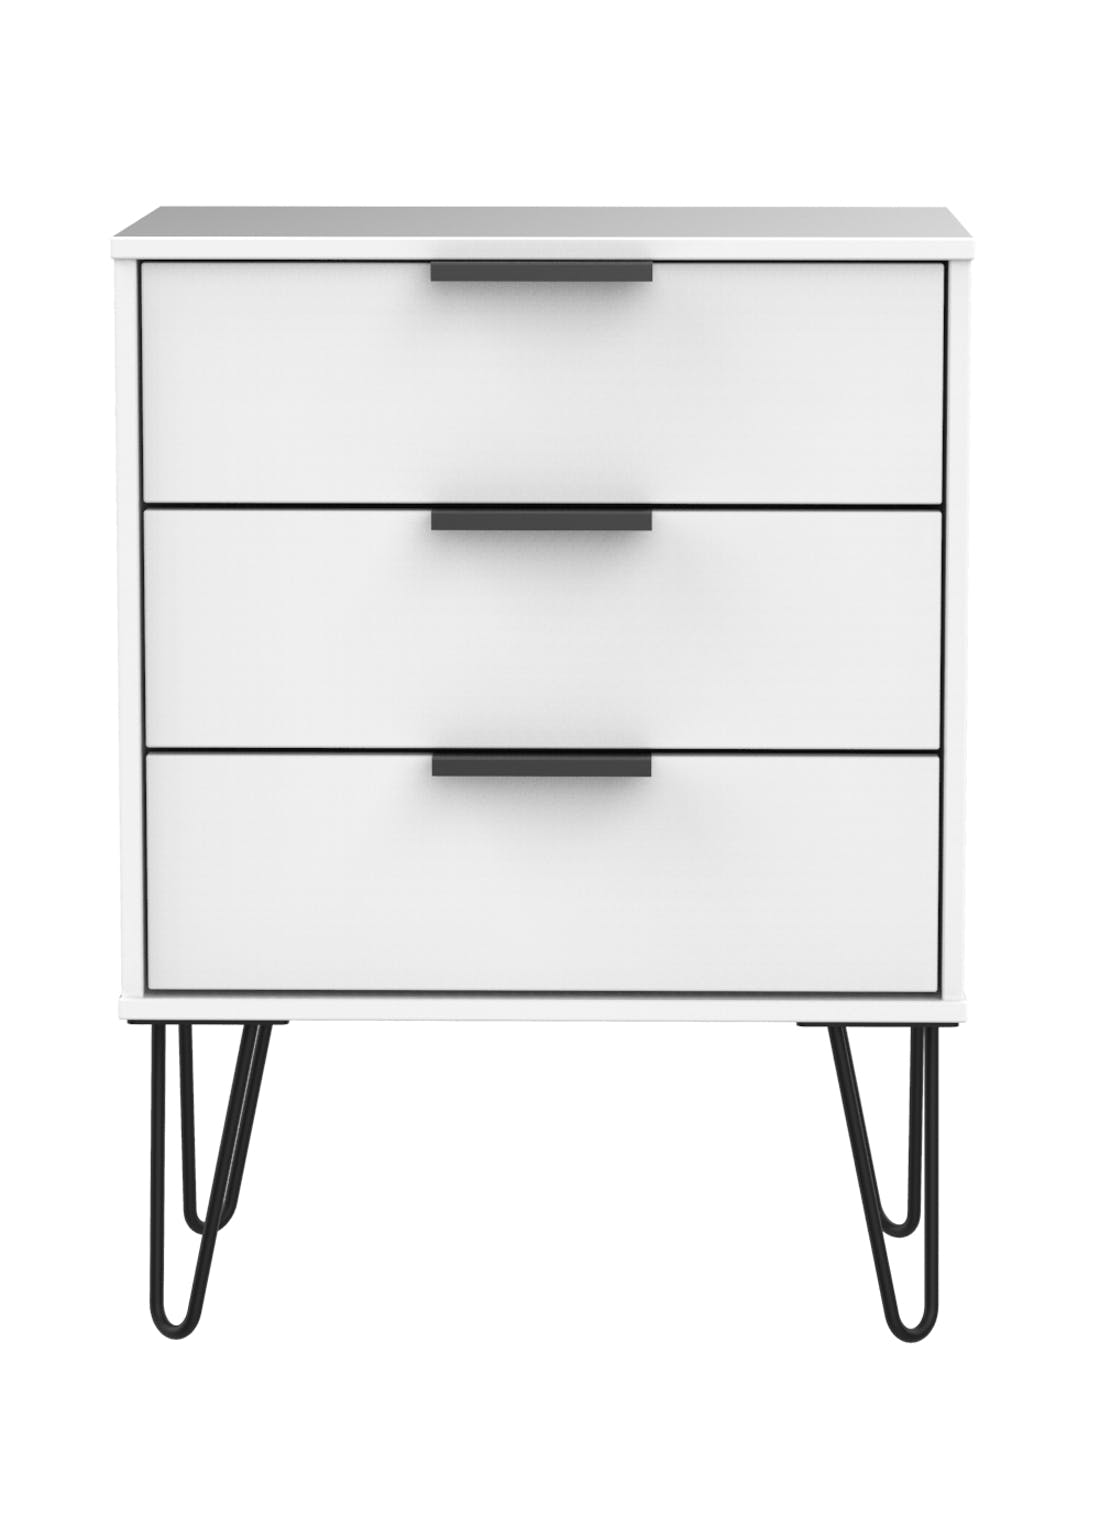 Swift Milano 3 Drawer Chest (74cm x 57.5cm x 39.5cm)